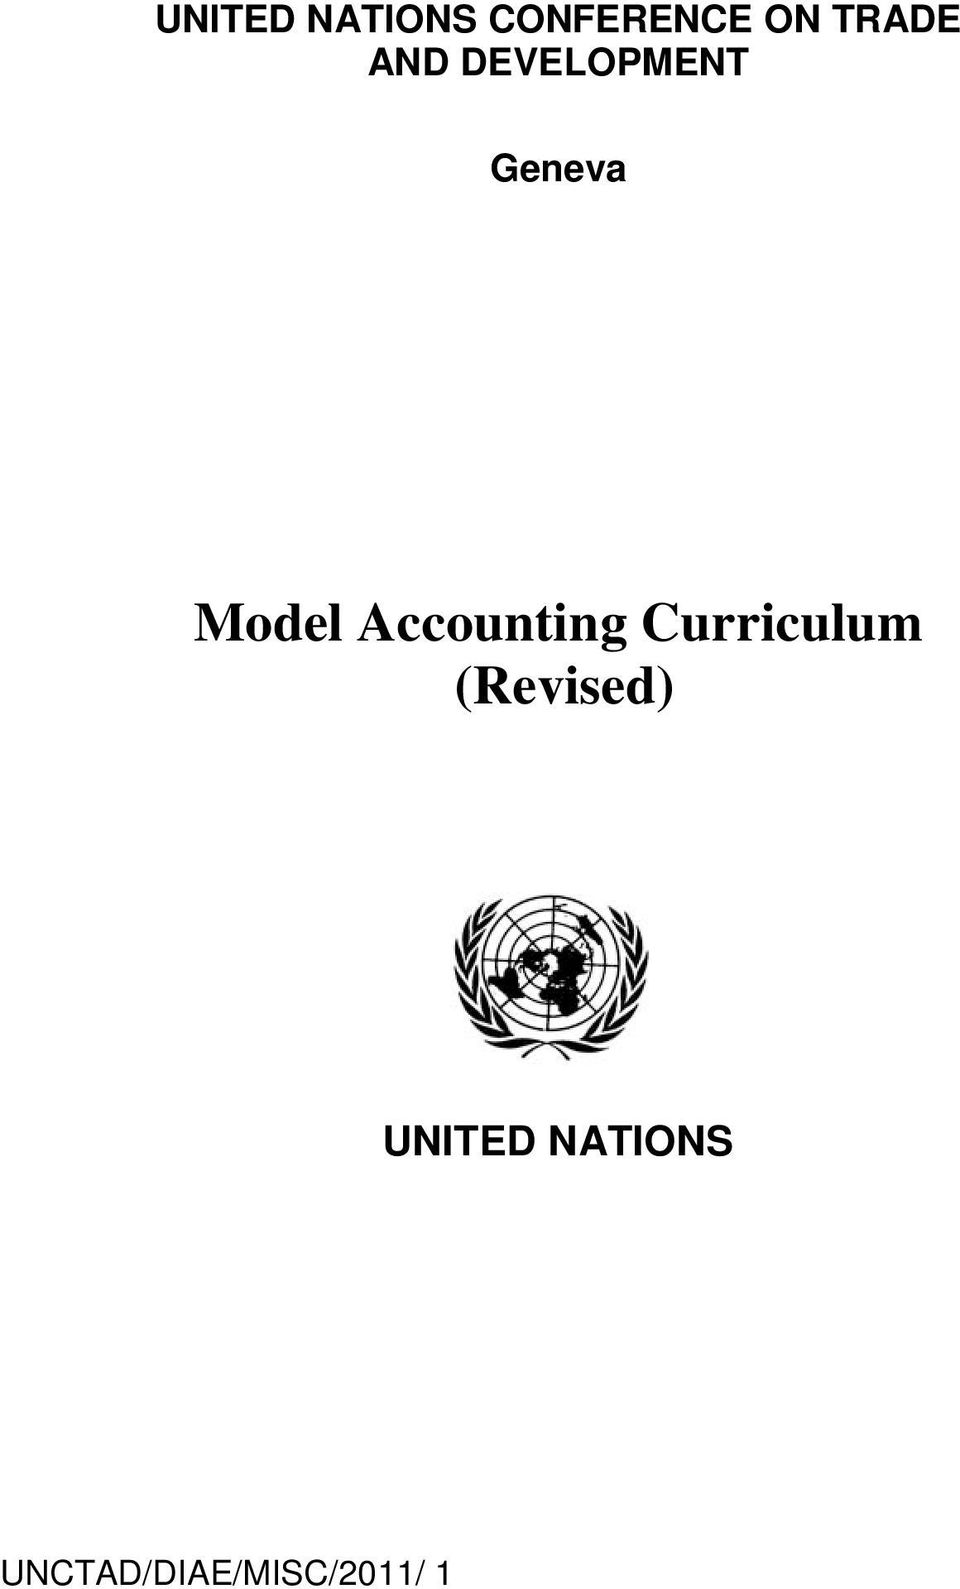 Model Accounting Curriculum